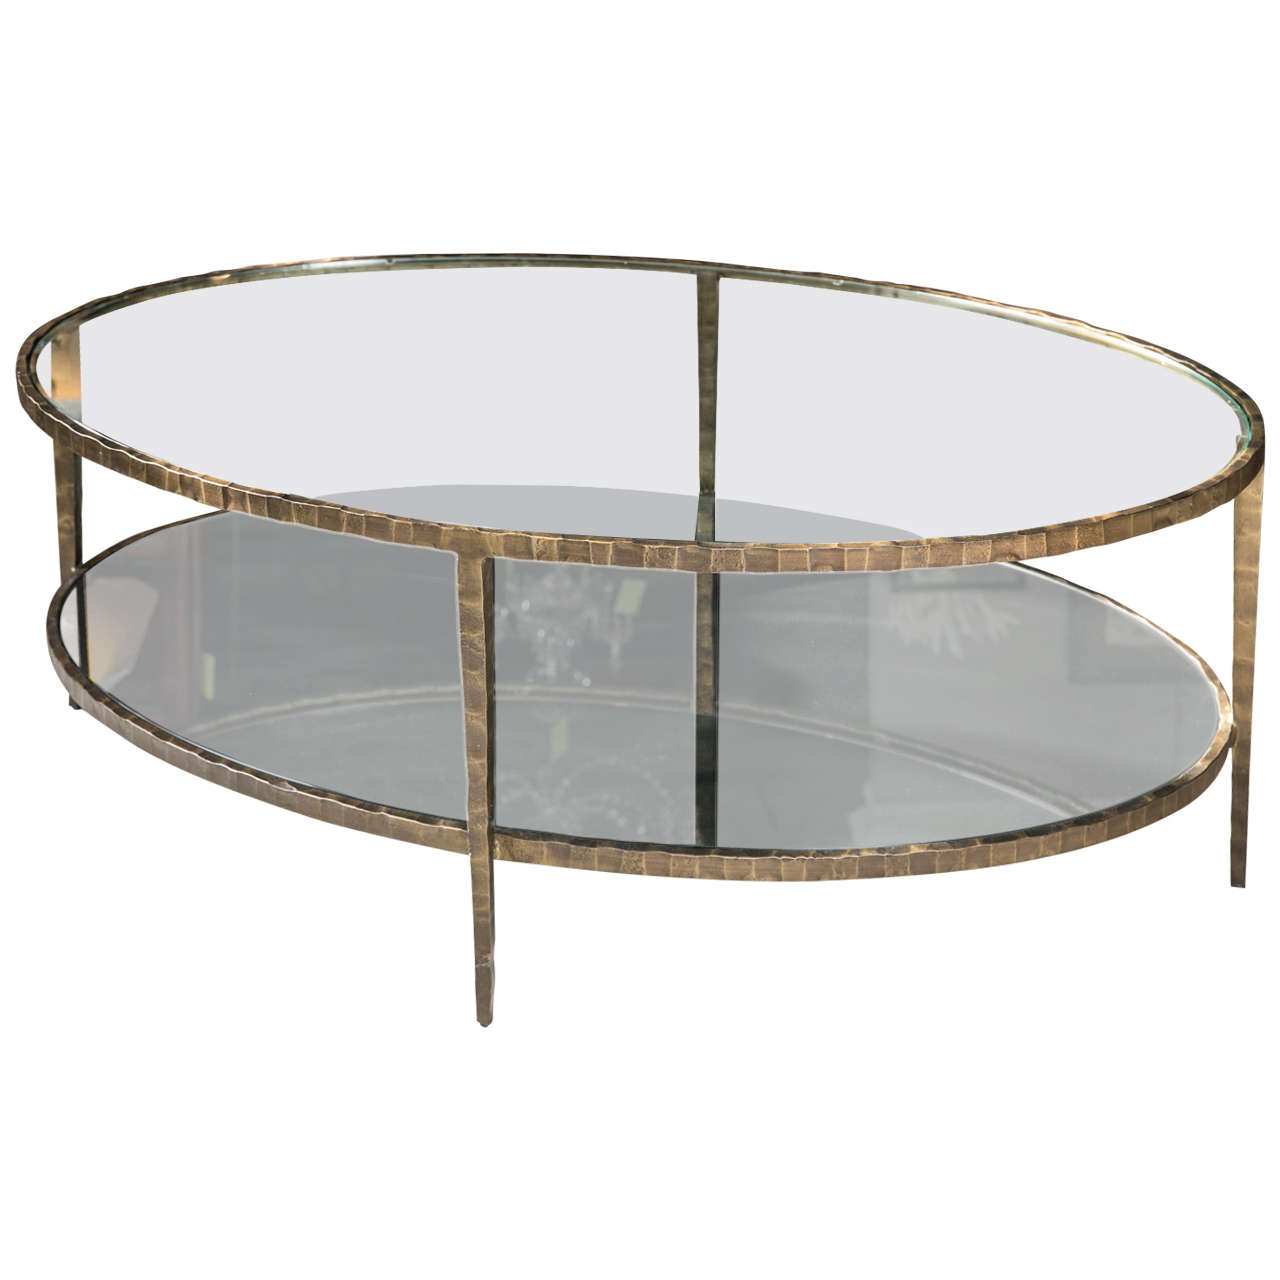 Steel and glass coffee table at 1stdibs Steel and glass coffee table